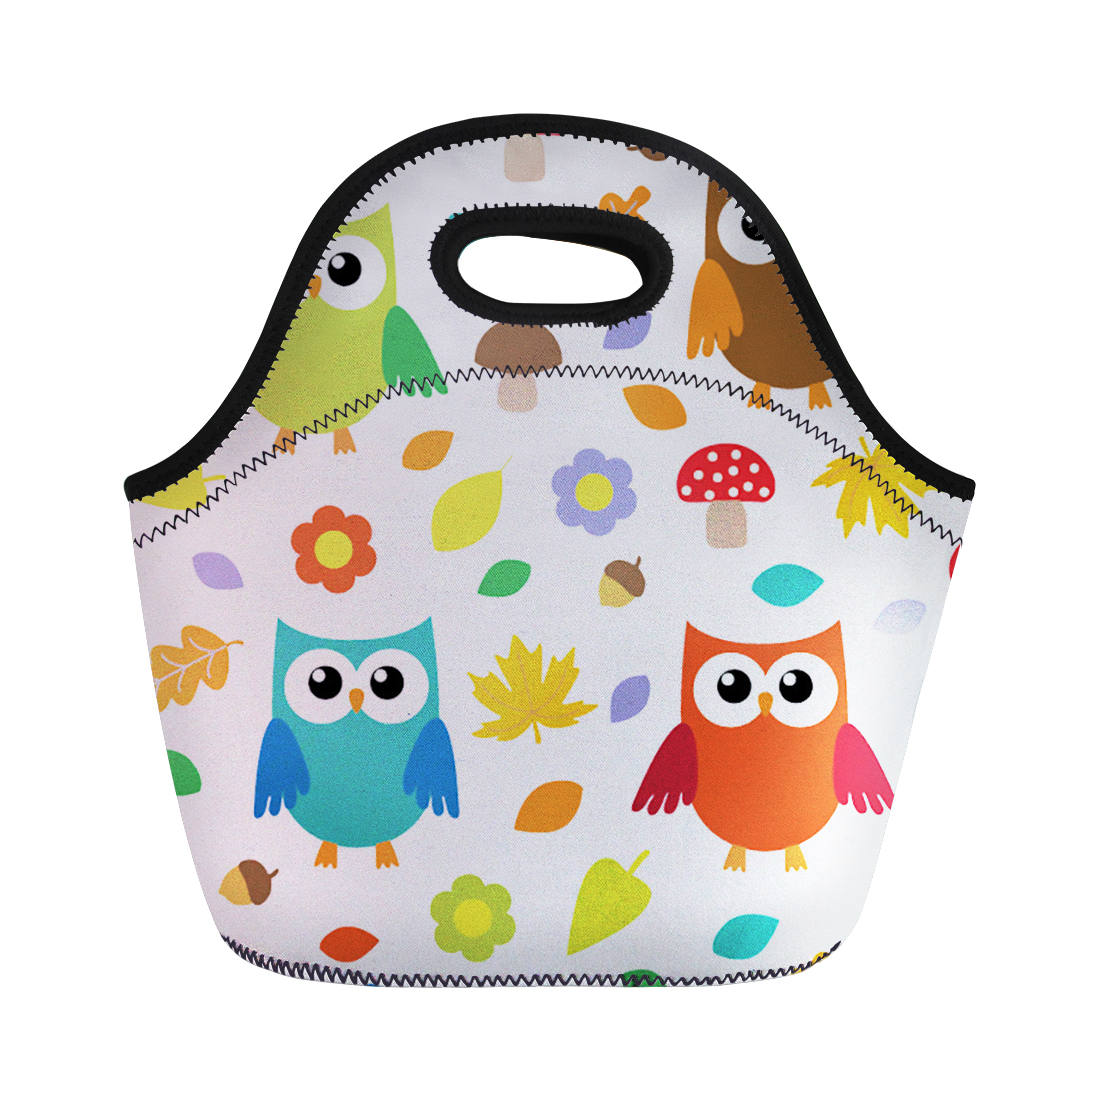 FORUDESIGNS Cartoon Owl Insulated Lunch Bag for Kids Thermal Food Picnic Handbag for Girls Women Package Lunch Box Bag Tote